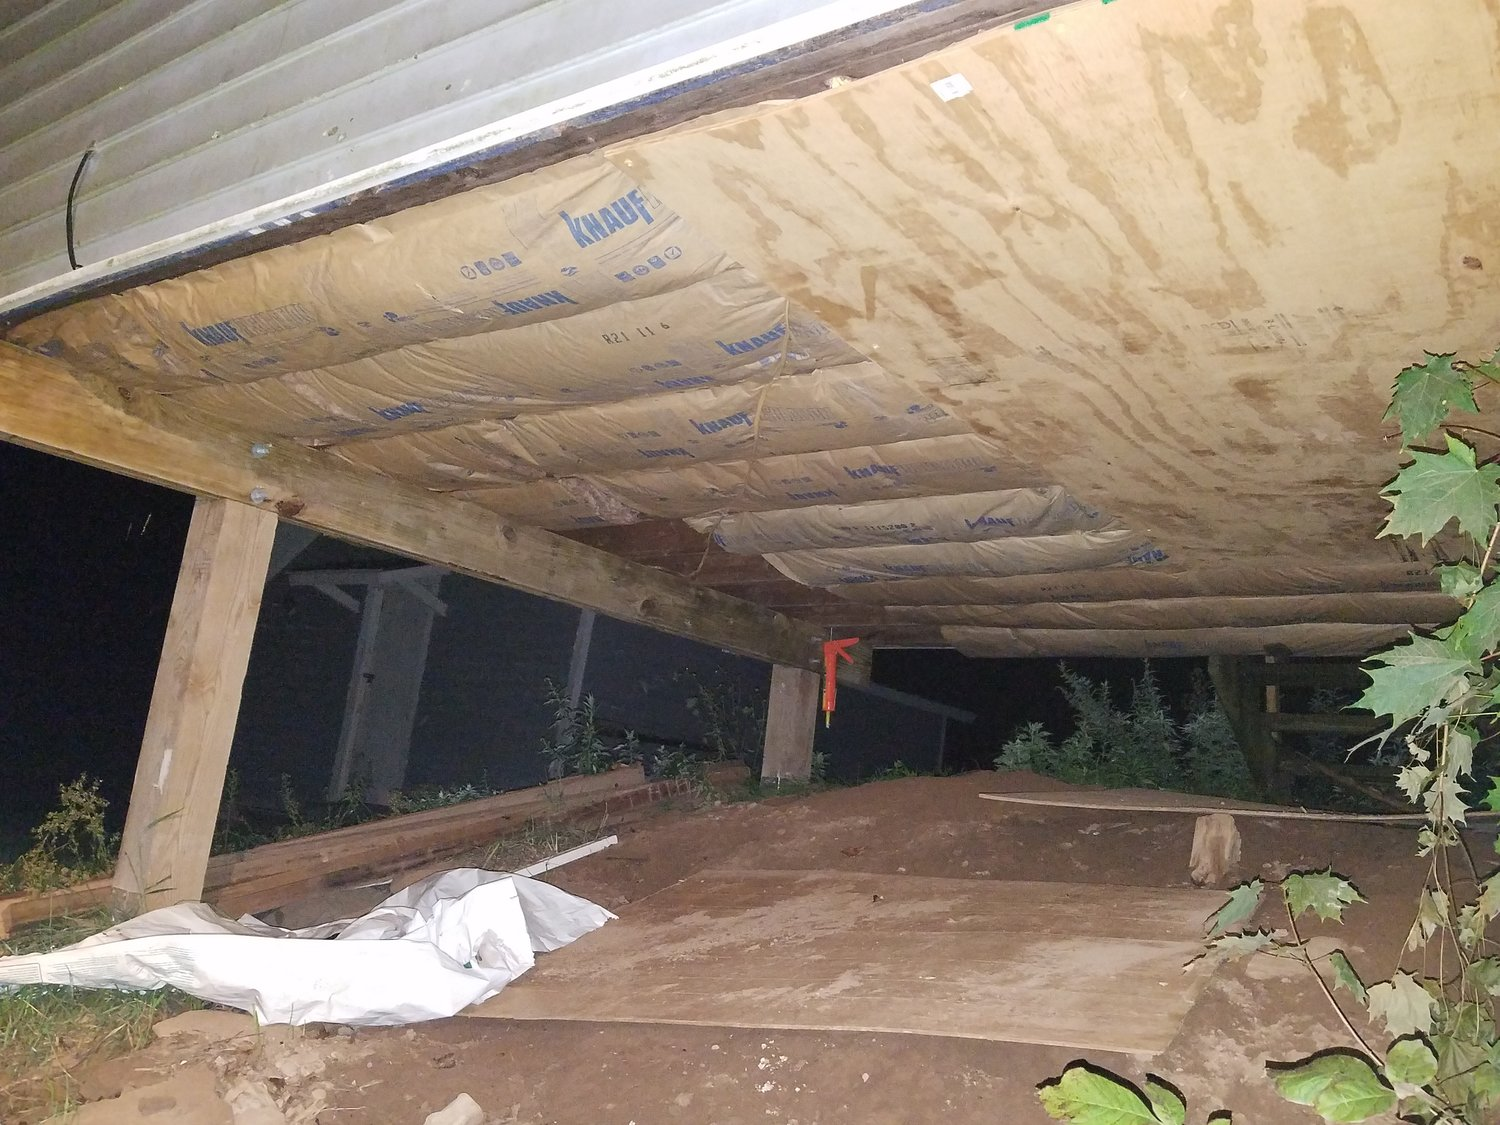 It isn't much to look at, but a well-insulated addition makes for a warm and happy family as the nights get colder.